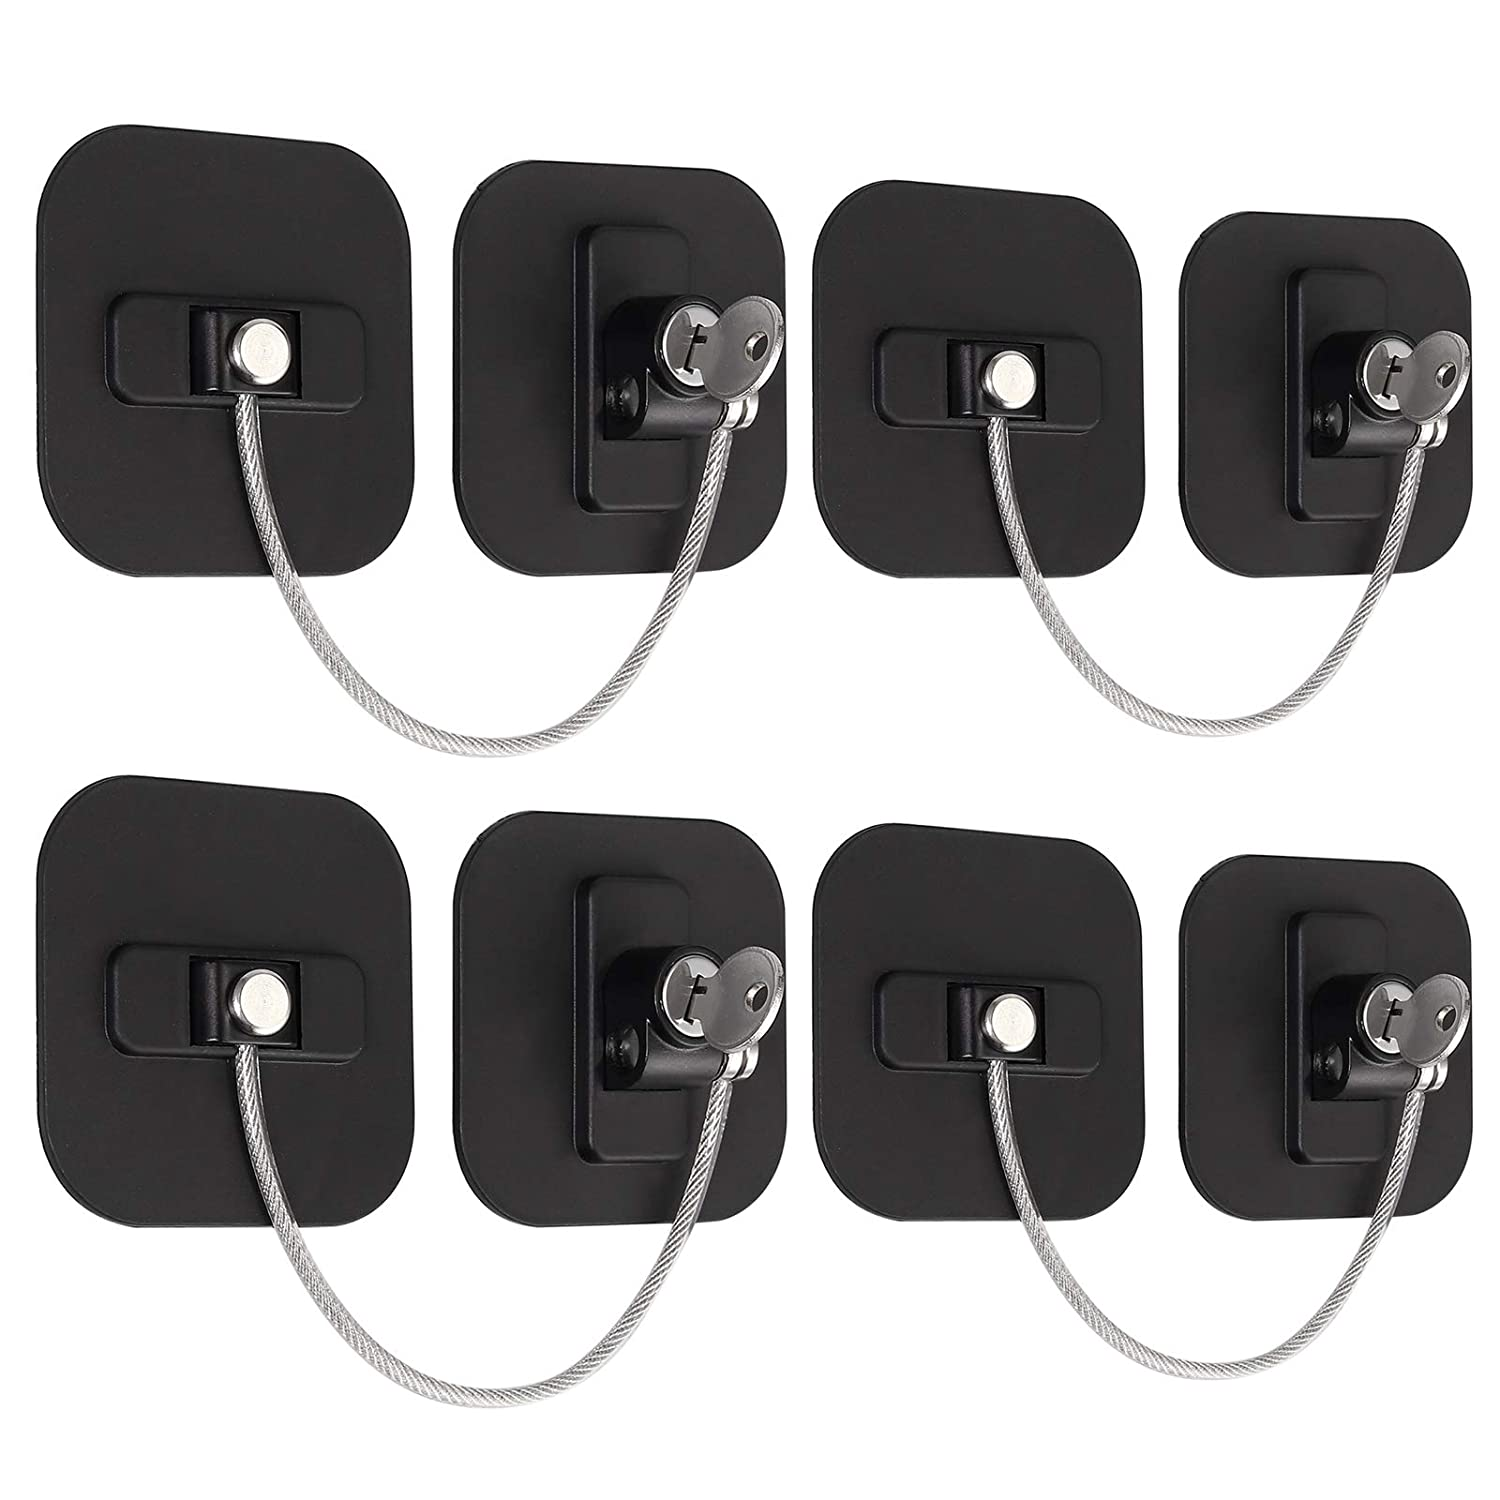 eSynic Refrigerator Locks, 4 Pack Fridge Lock with Keys Child Safety Cabinet Locks with Strong Adhesive Safety Locks Set for Appliances Kitchen Cabinets Fridge Door Refrigerator Cabinet Drawer Black